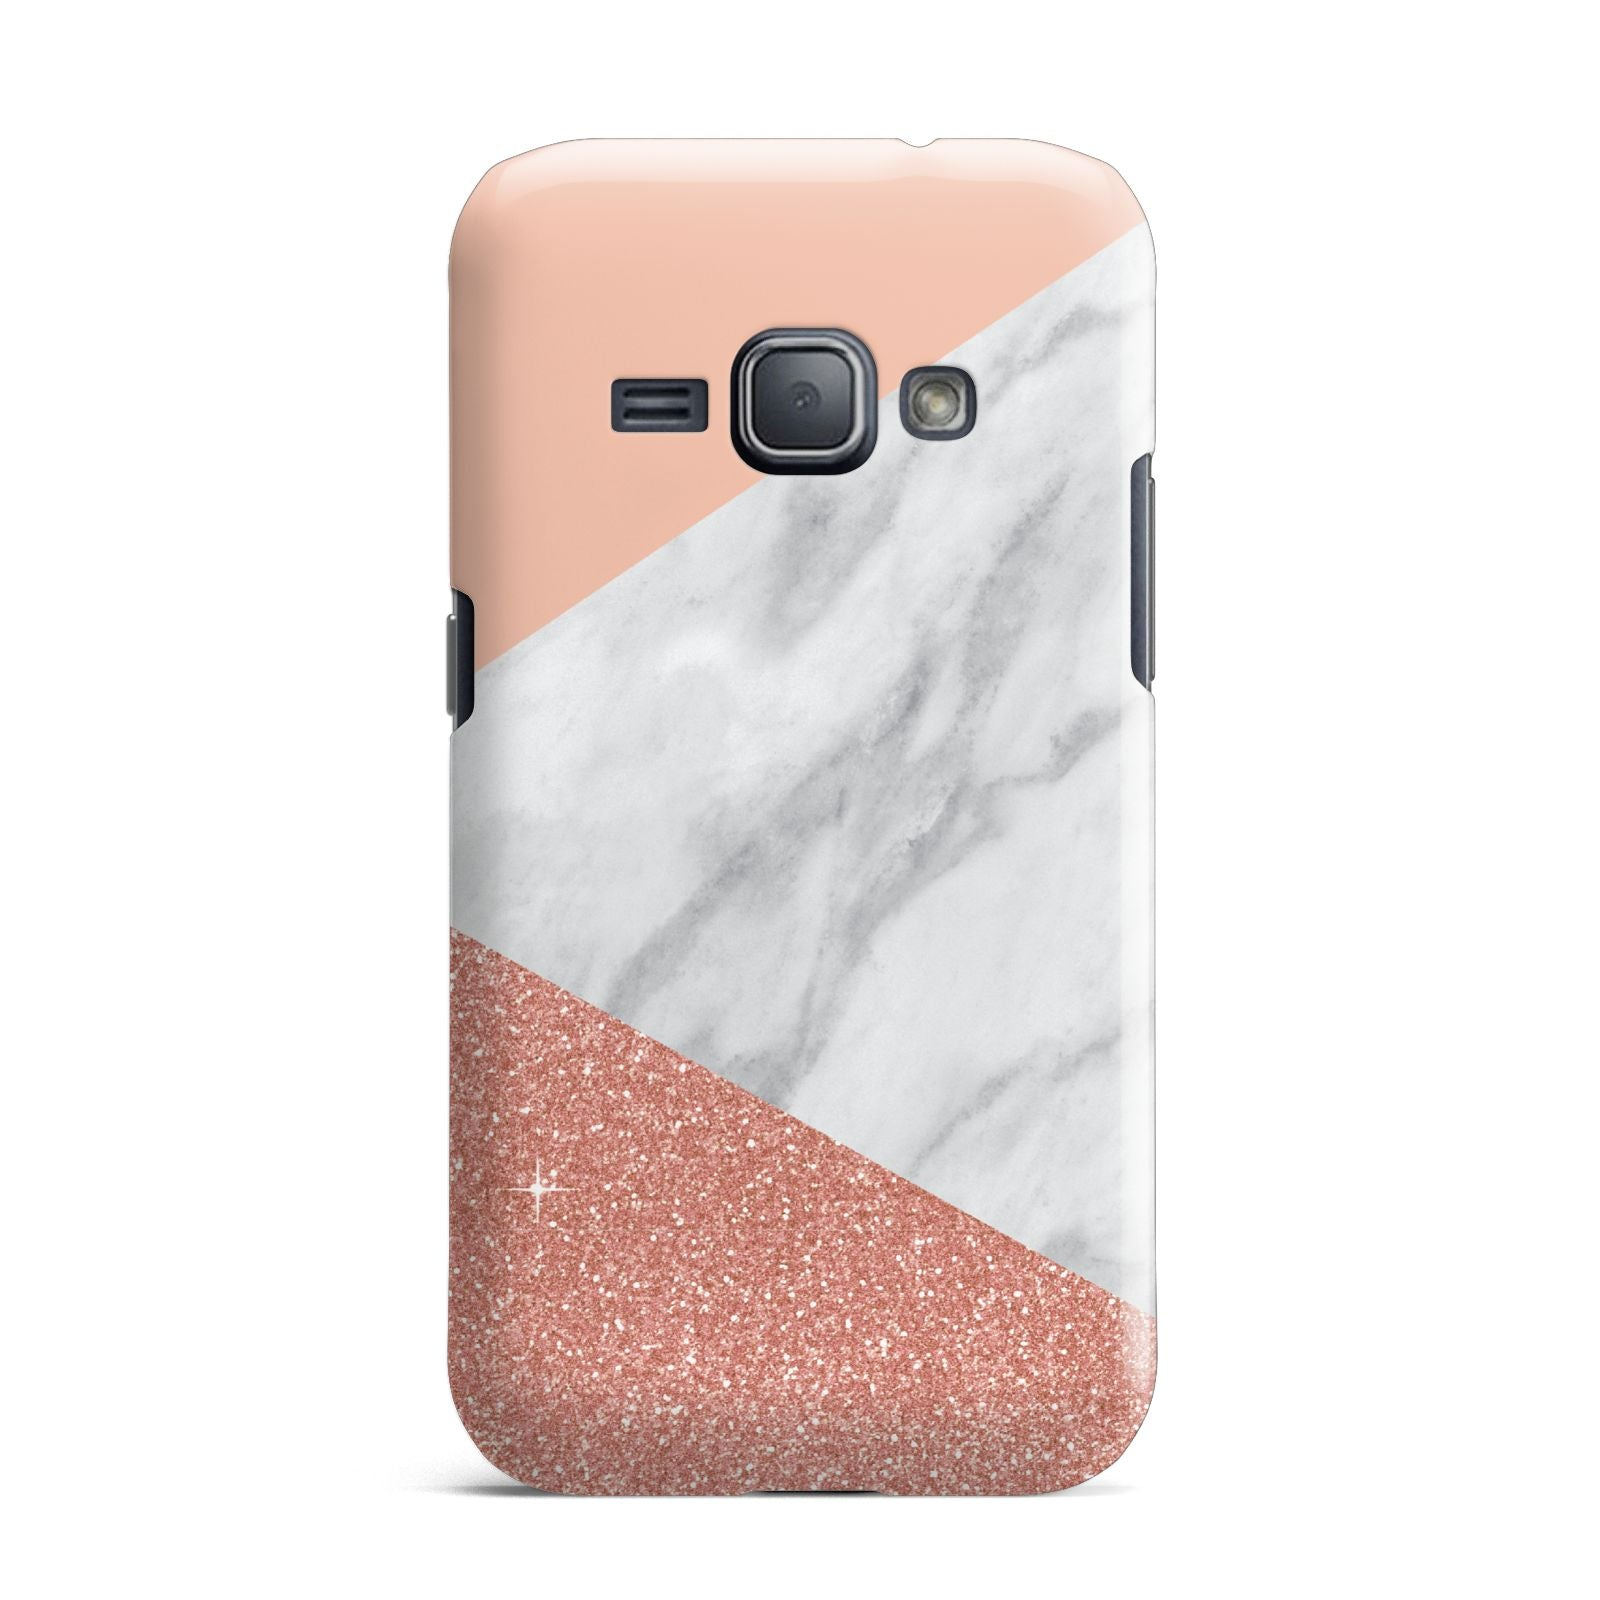 Marble White Rose Gold Samsung Galaxy J1 2016 Case